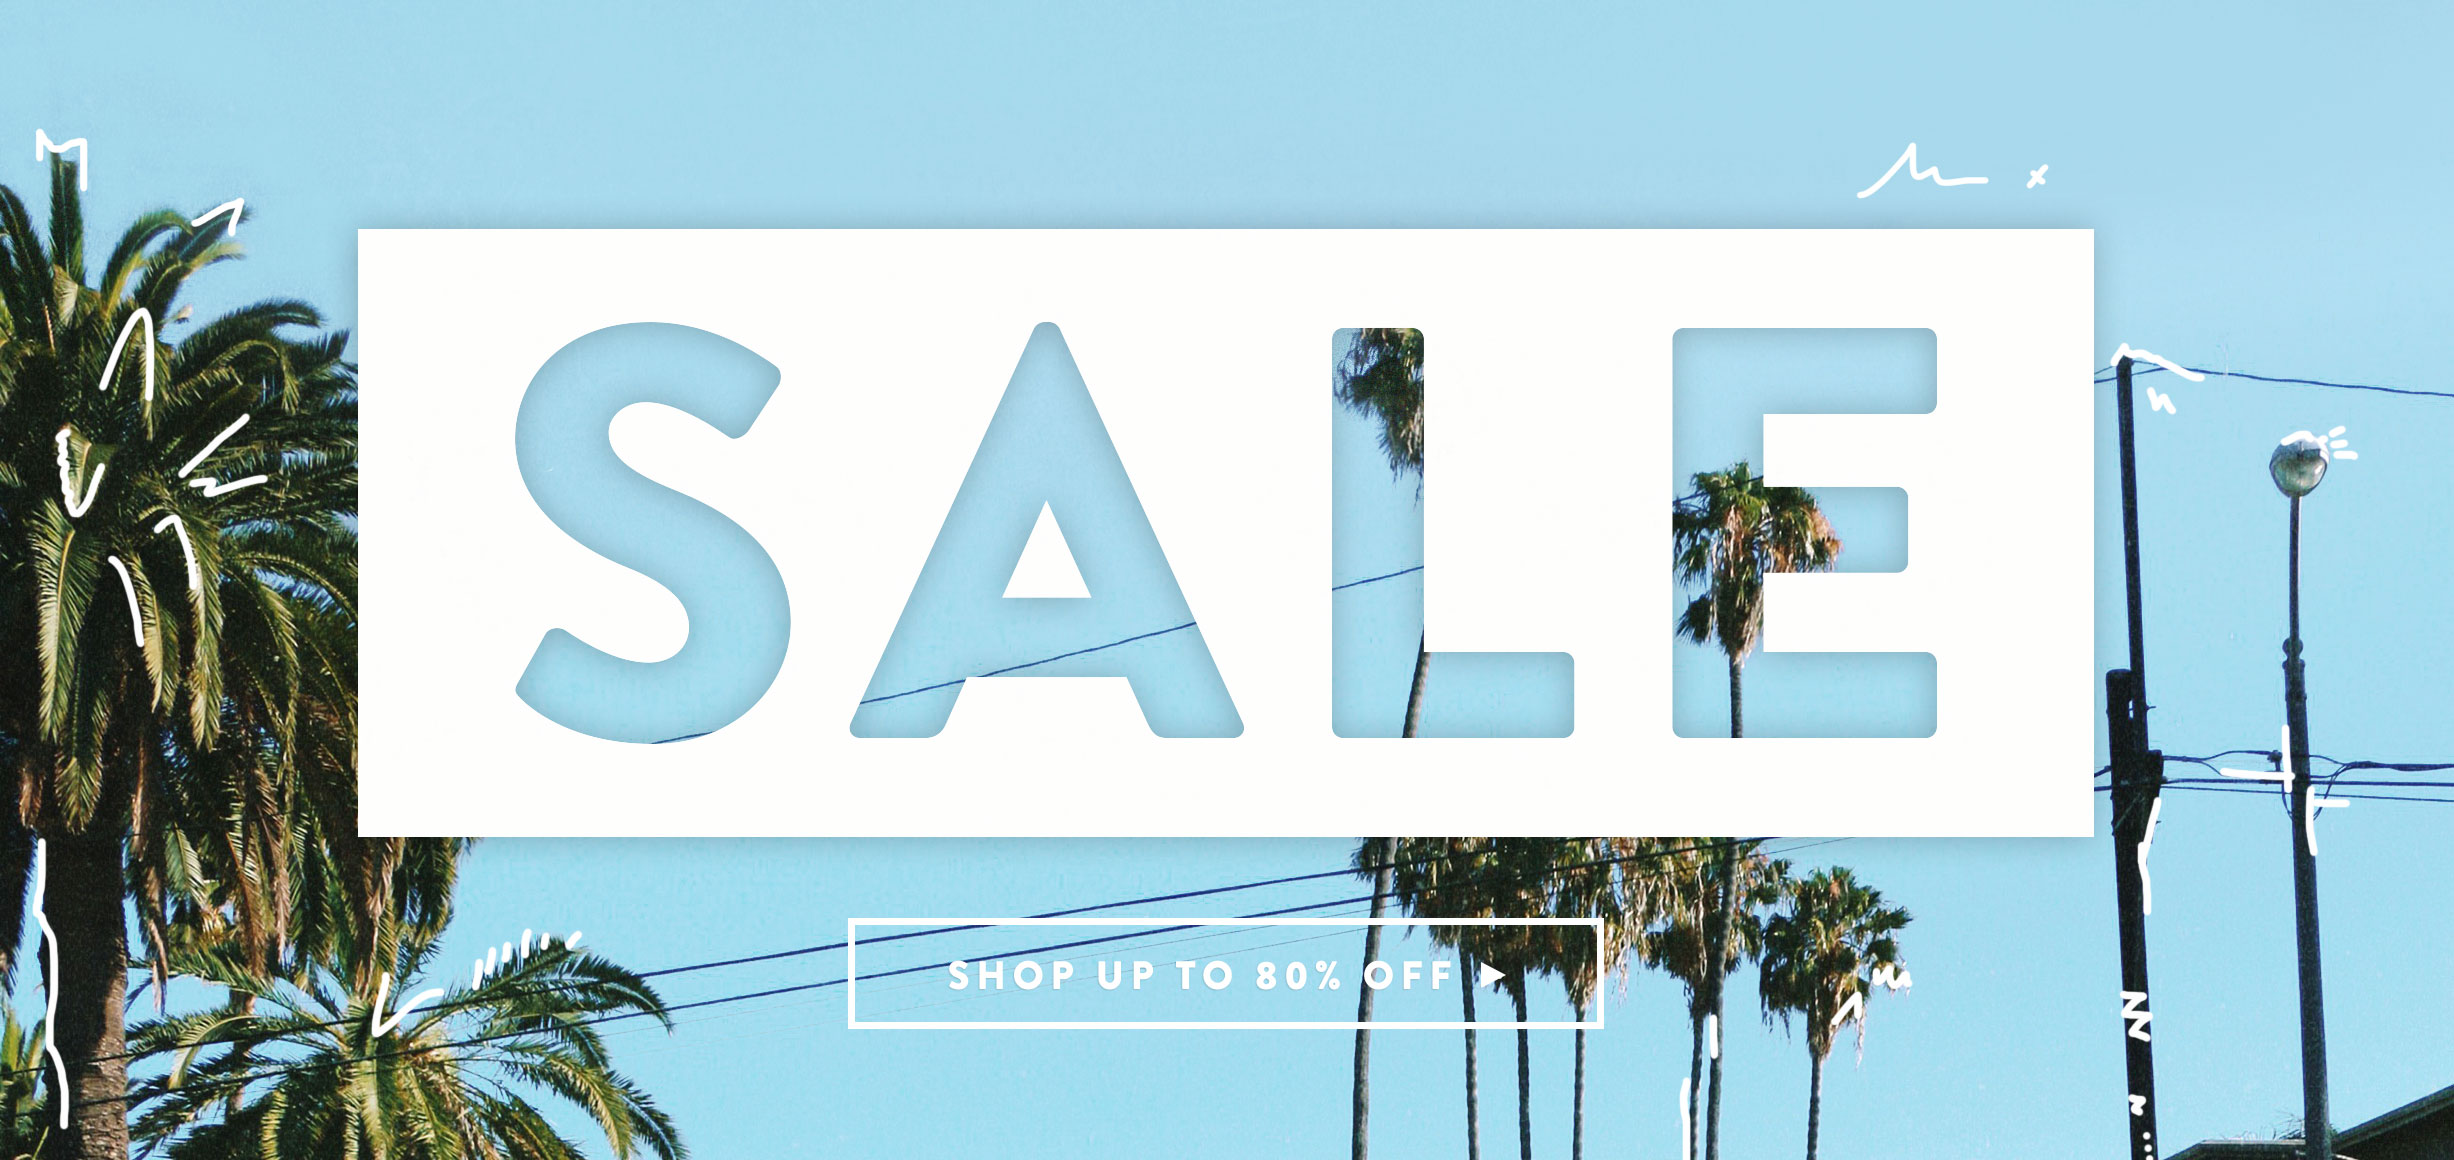 Lamoda Lamoda: Sale up to 80% off shoes, bags, jewellery and accessories